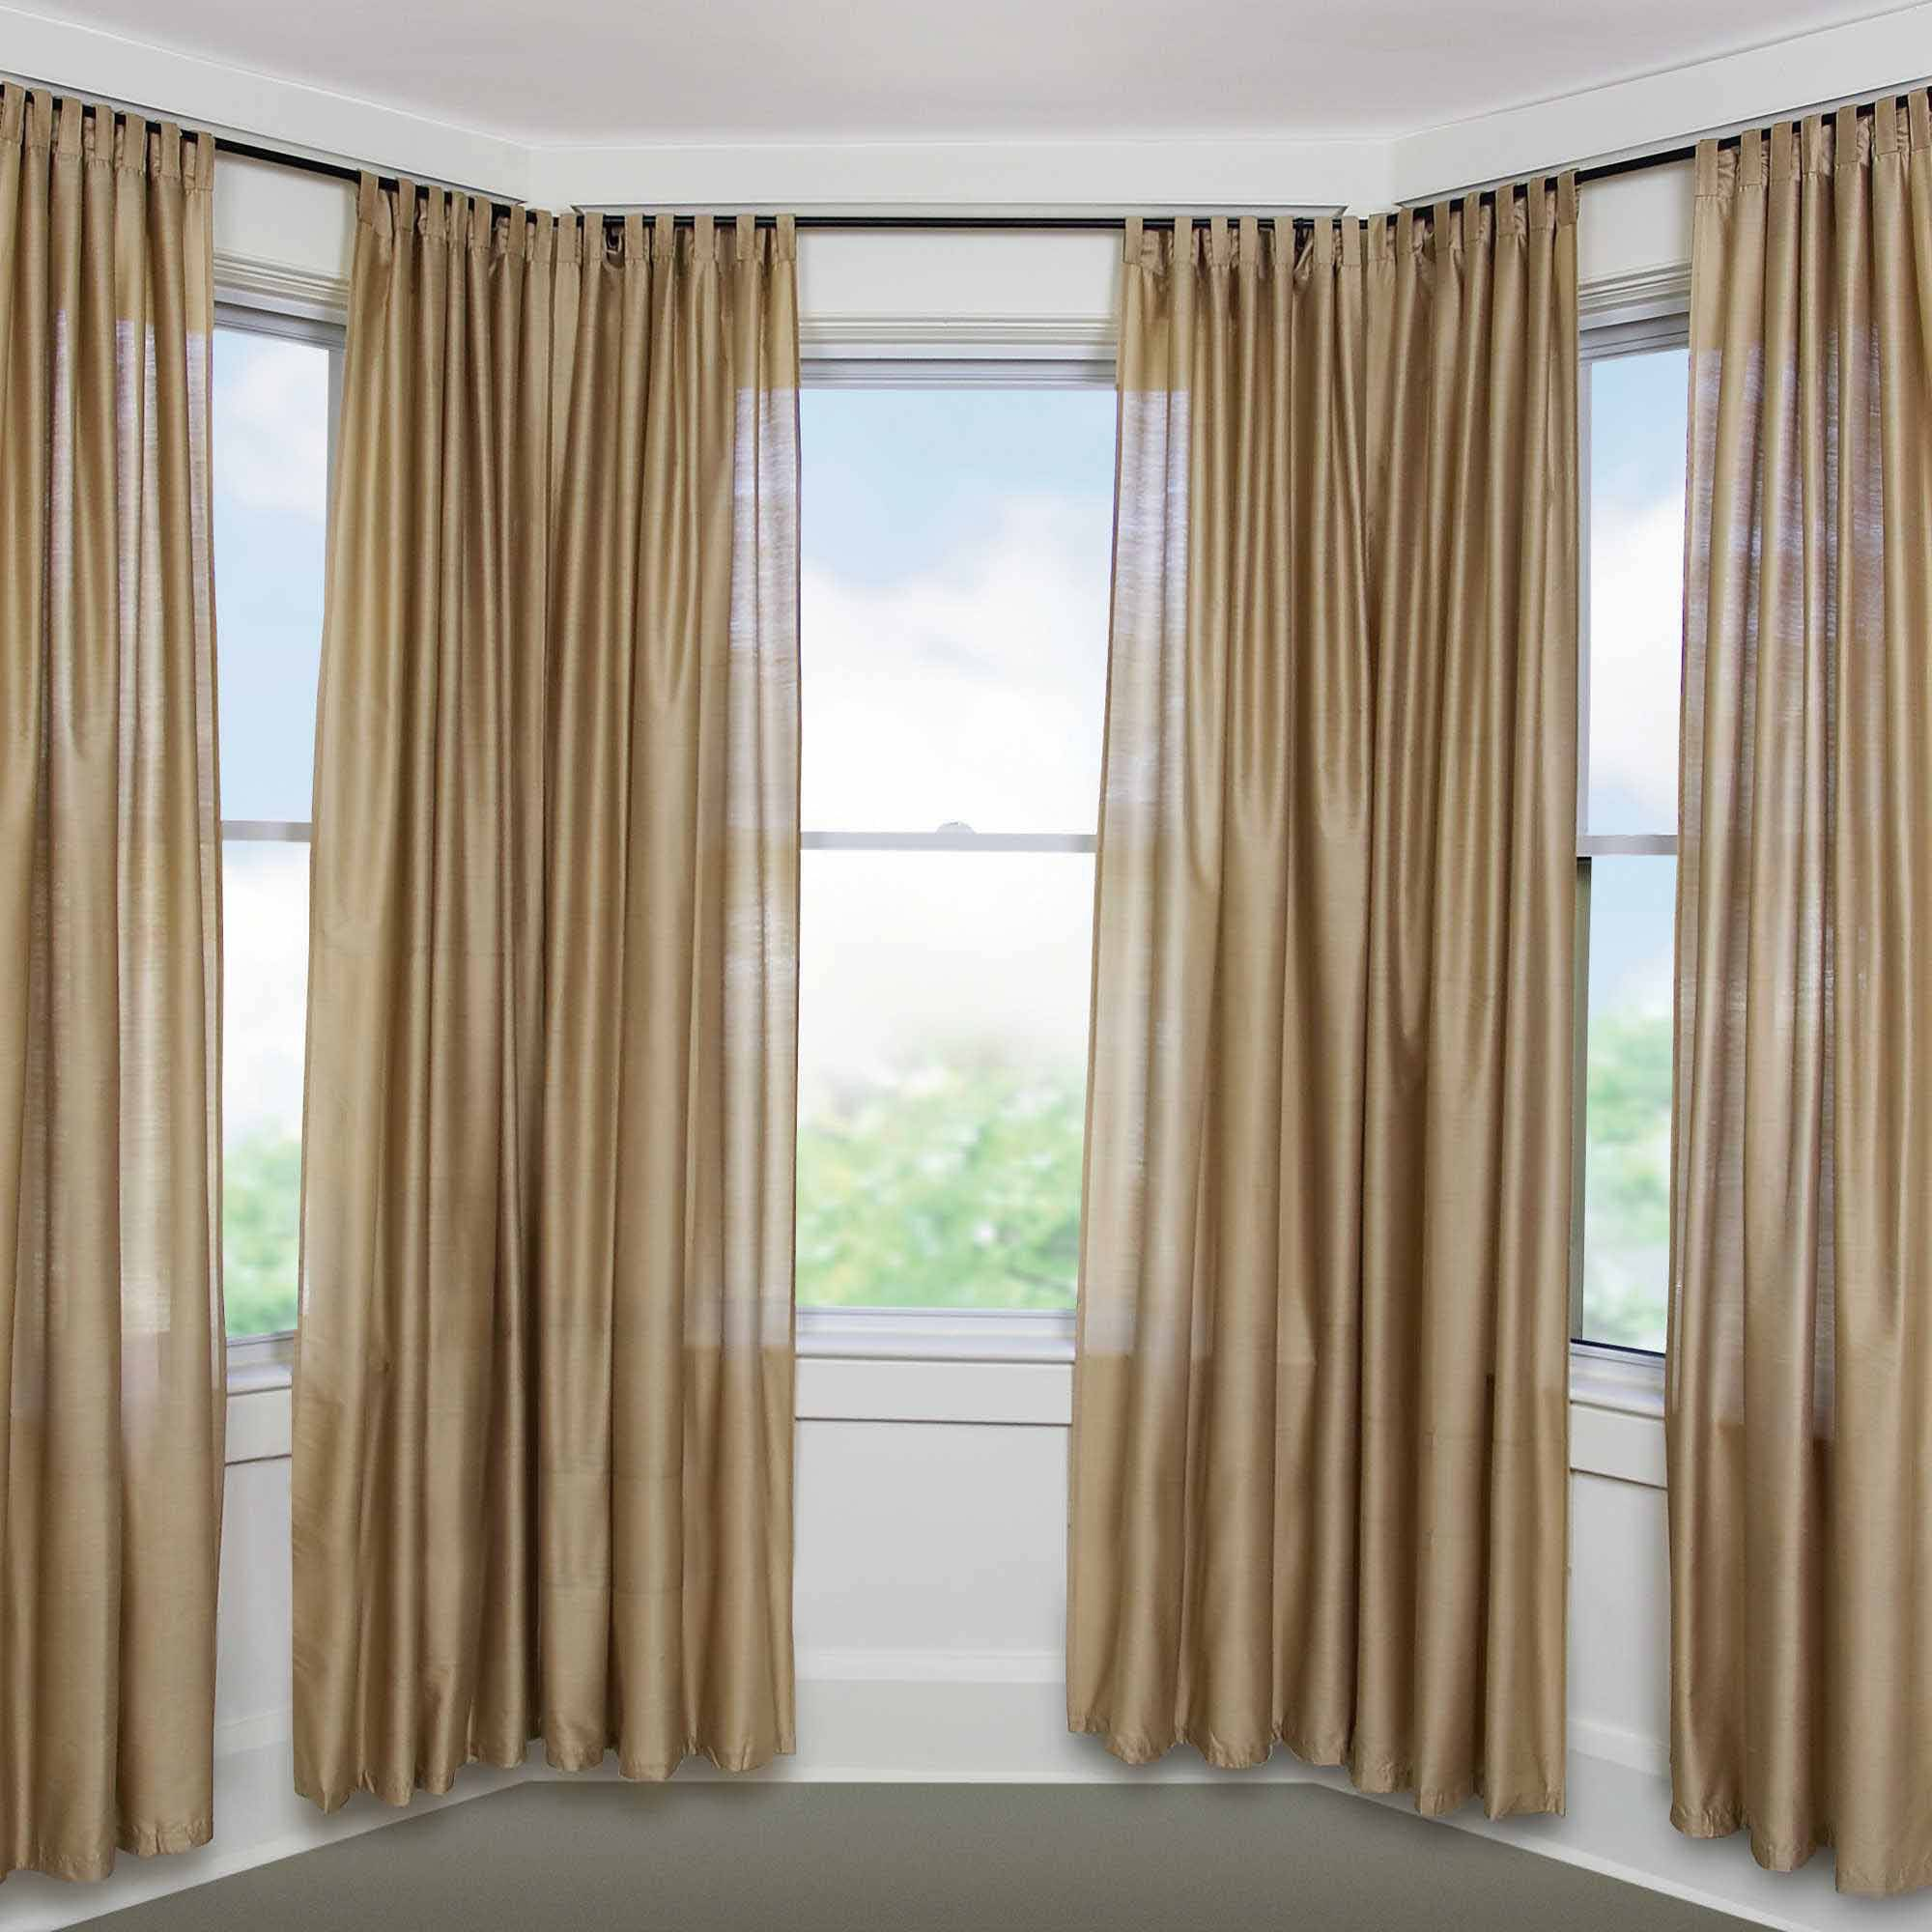 "Bay Window Adjustable Curtain Rod for Windows, 5/8"" Diameter - Walmart.com"